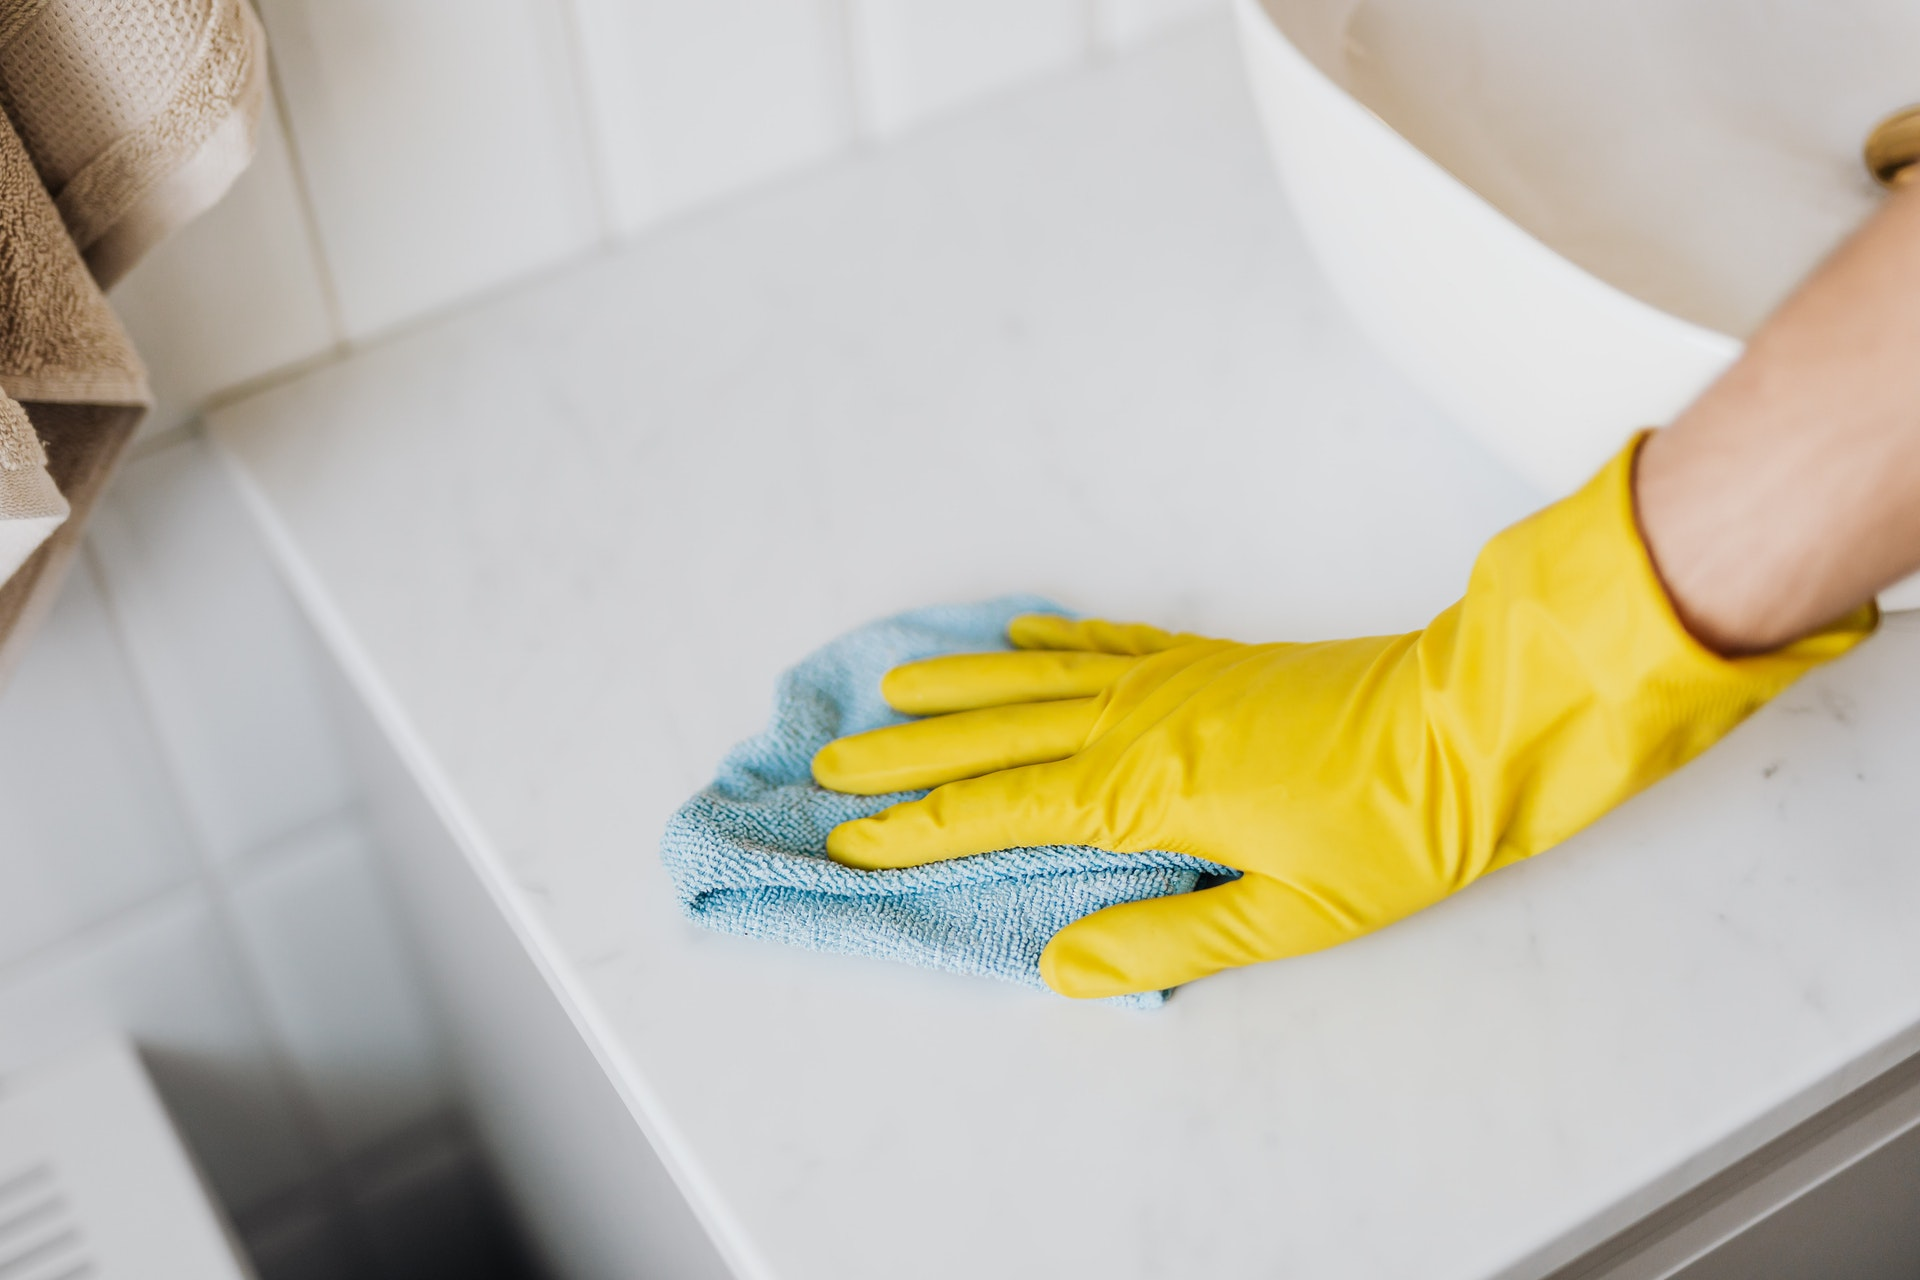 5 Awesome Cleaning Hacks to Keep your Bathroom Renovation Looking Brand New